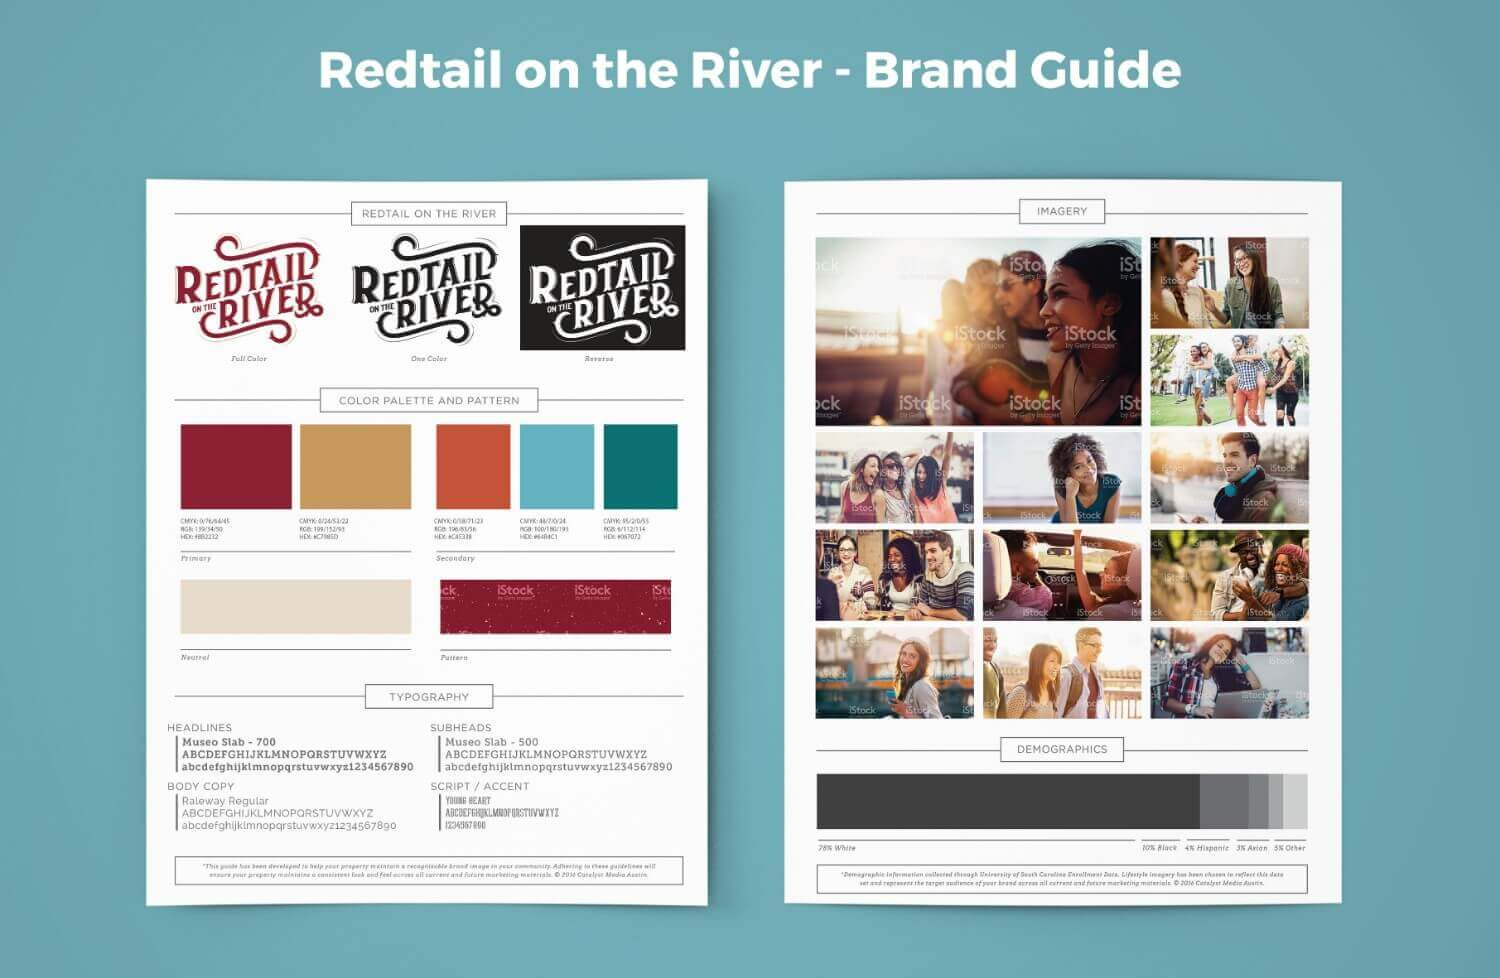 Redtail on the River Brand Guide